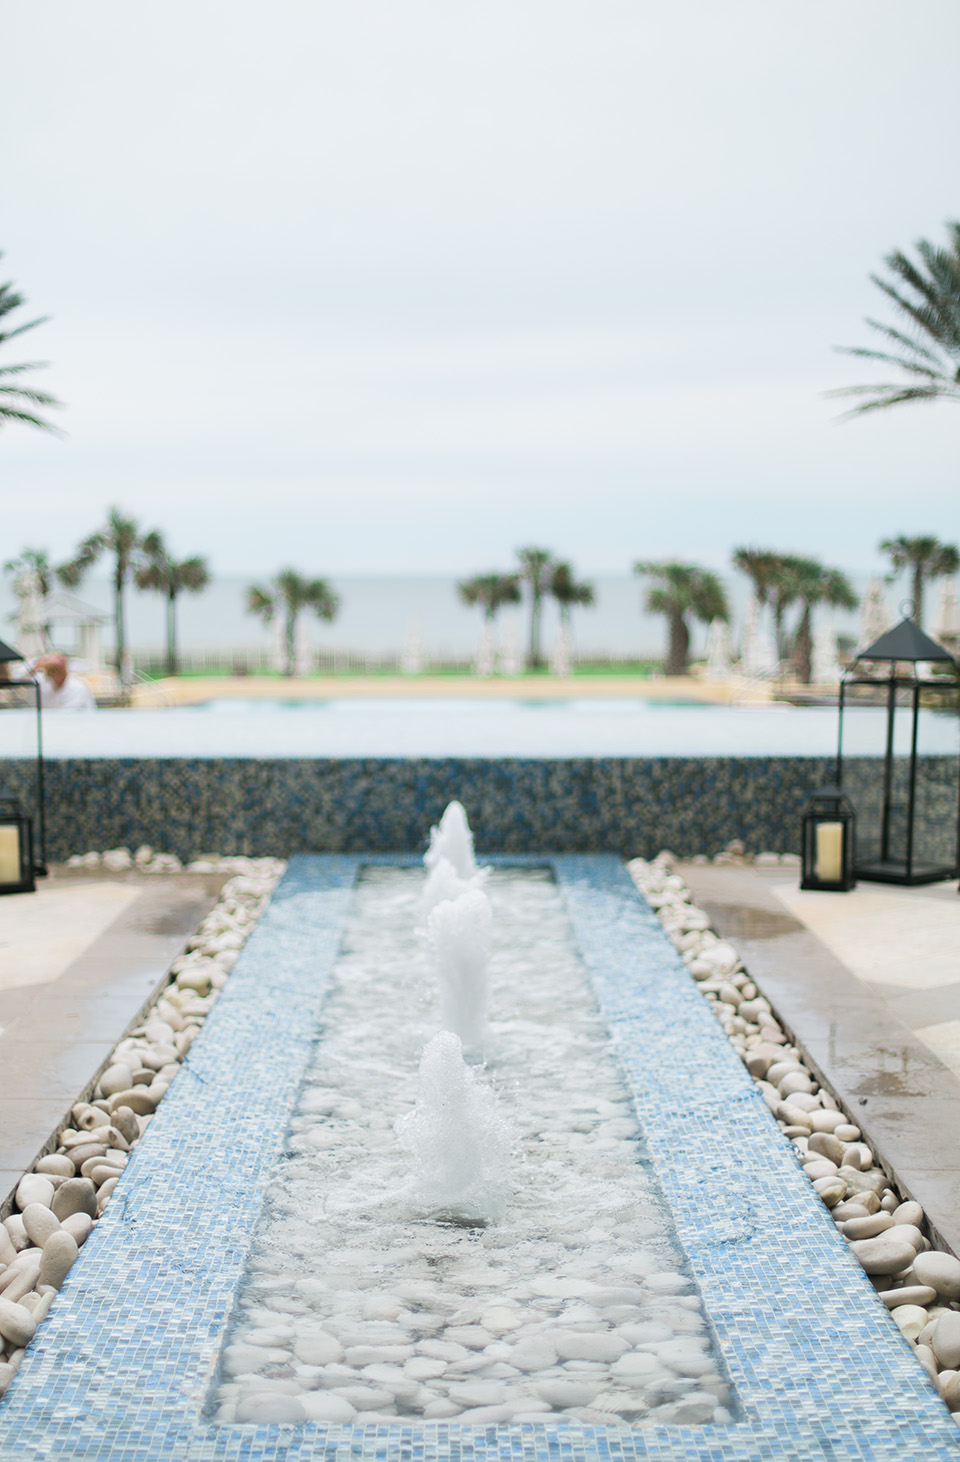 Picture of a fountain at the Omni Amelia Island Plantation Resort.